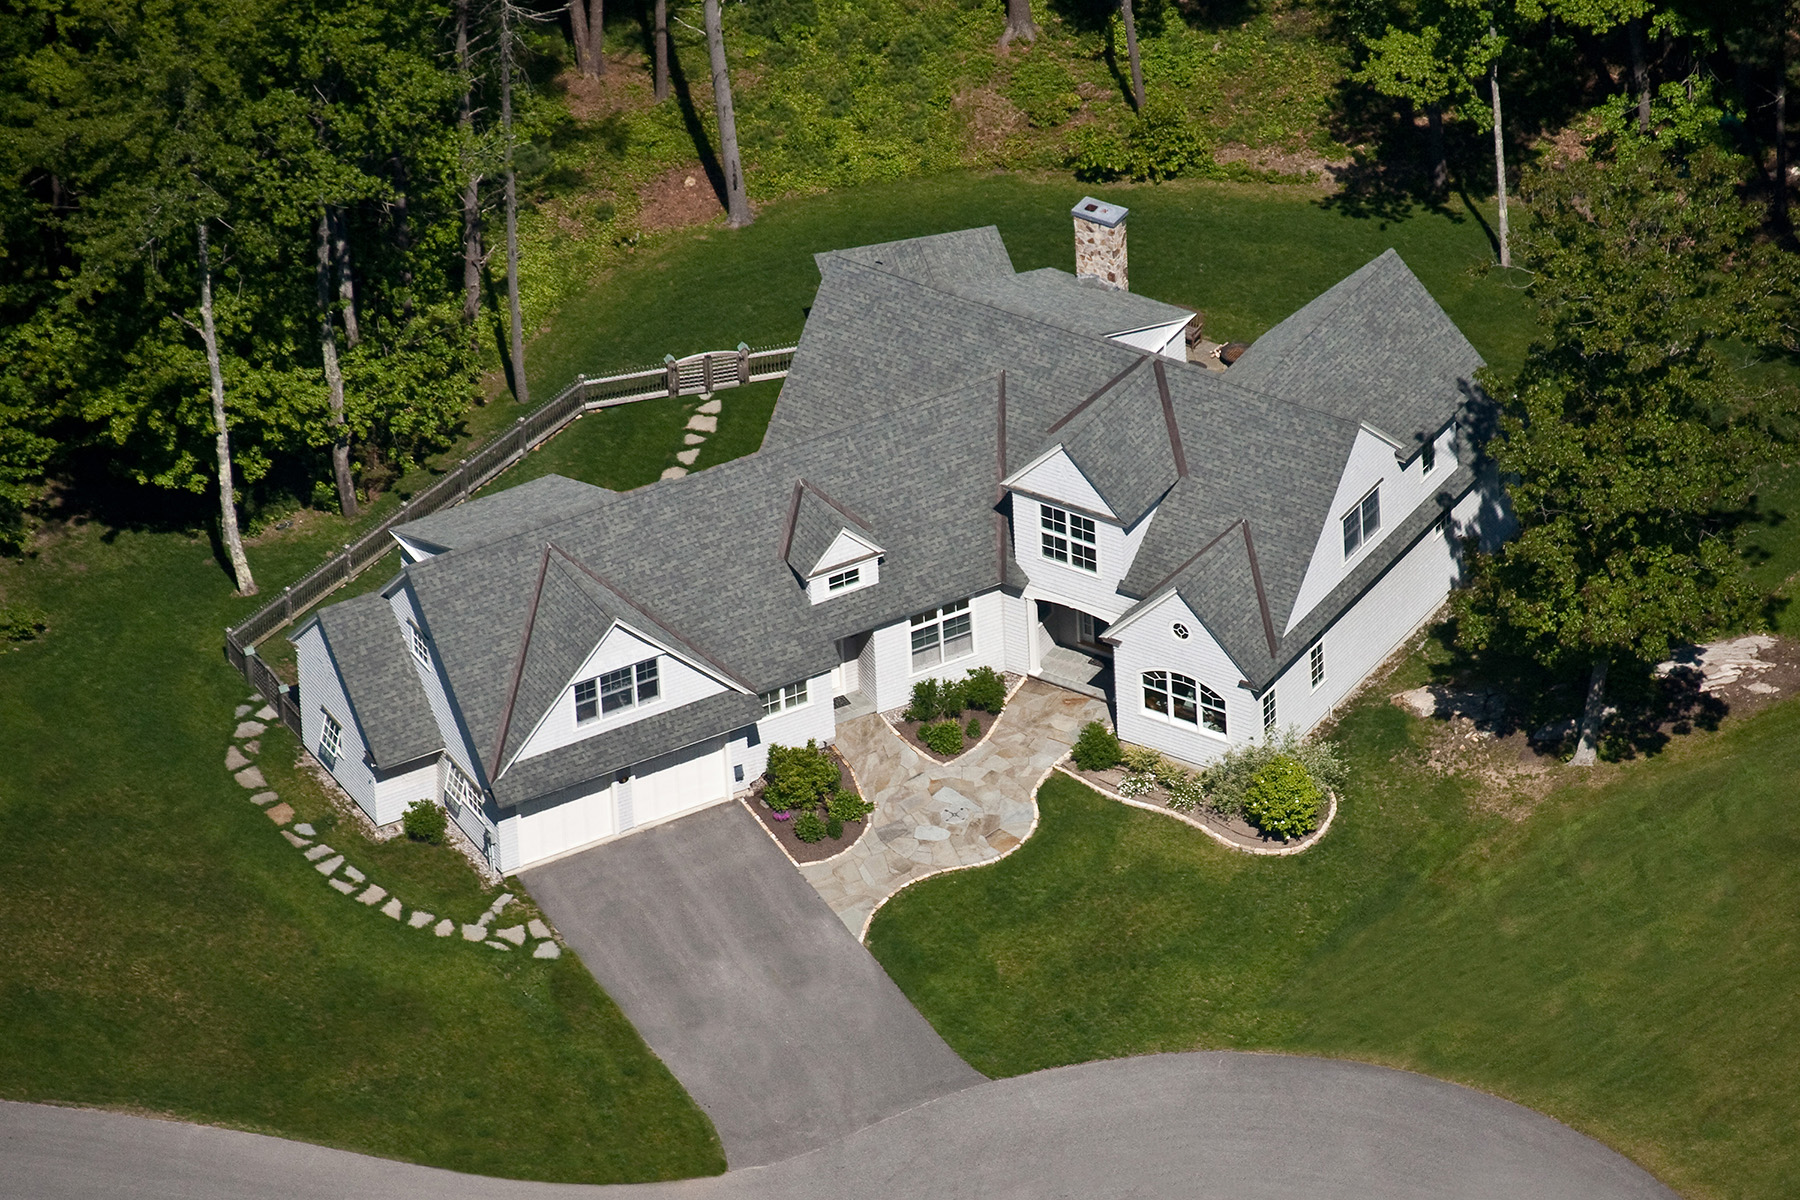 Single Family Home for Sale at 8 Winslow Lane Kennebunkport, Maine 04046 United States